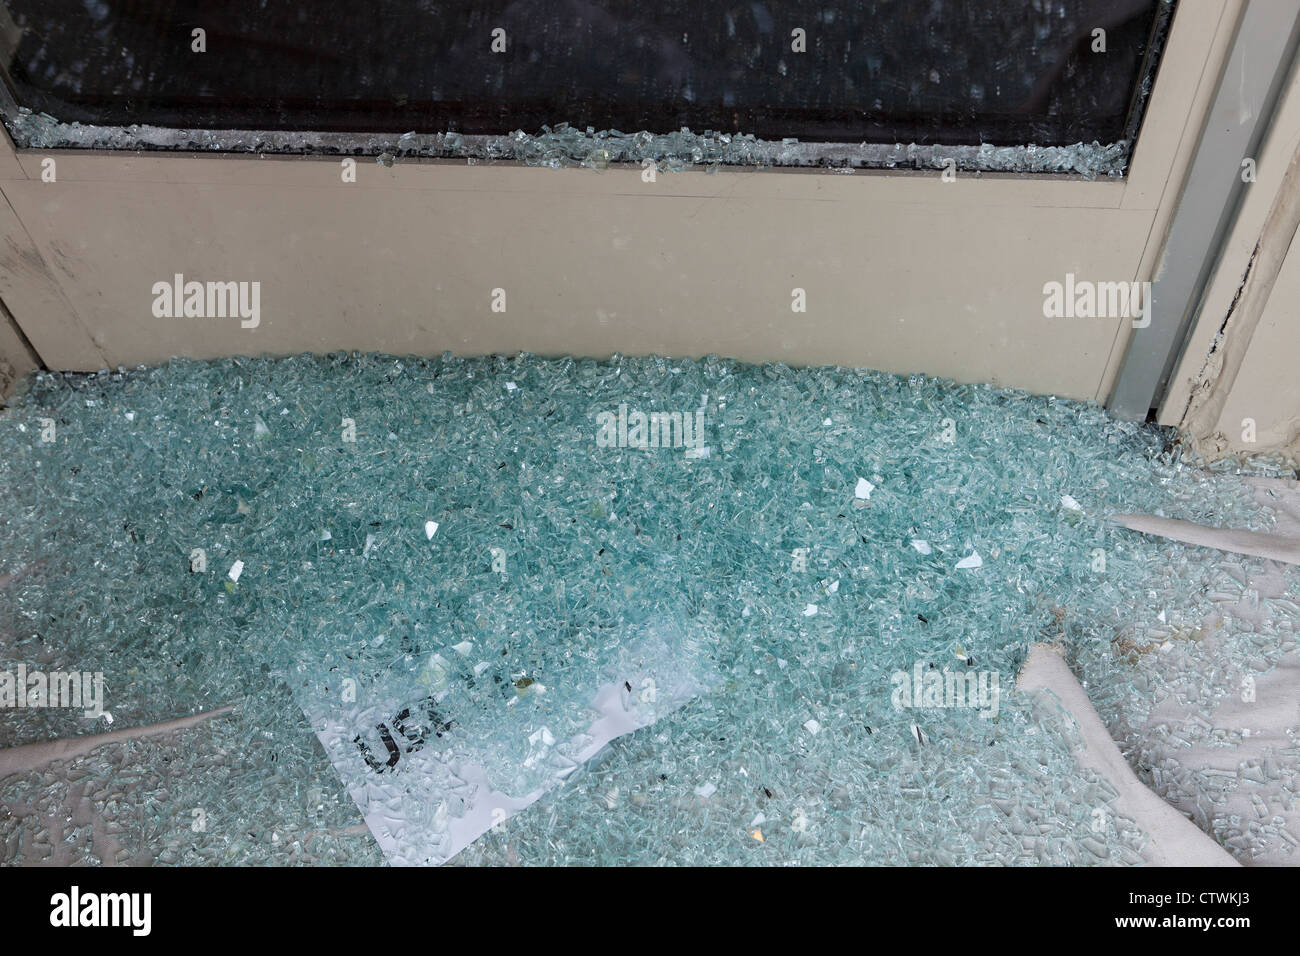 Shattered tempered glass - Stock Image